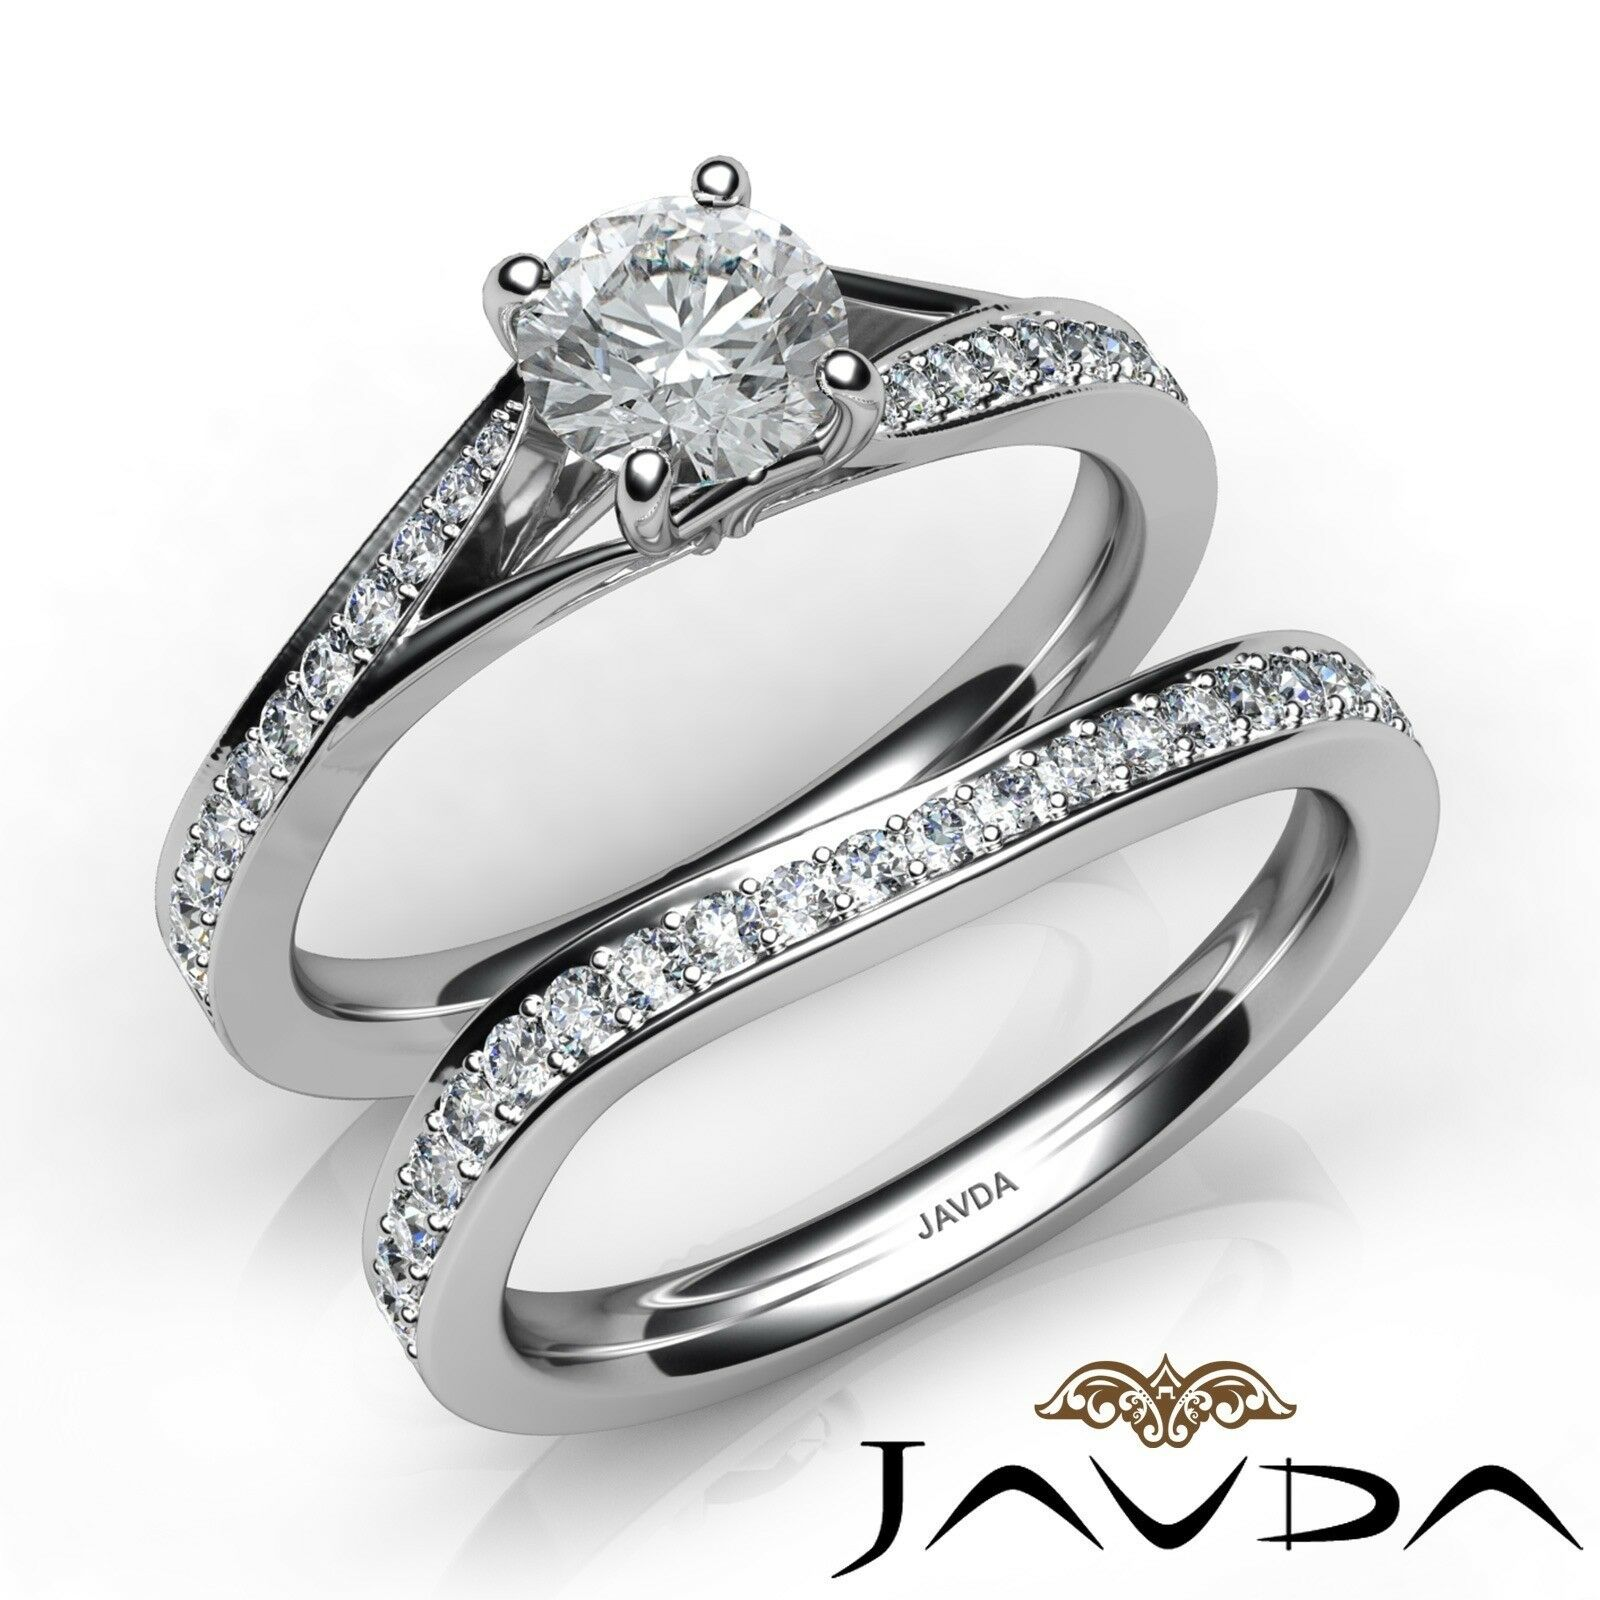 1.44ctw Sidestone Bridal Set Round Diamond Engagement Ring GIA I-SI1 White Gold